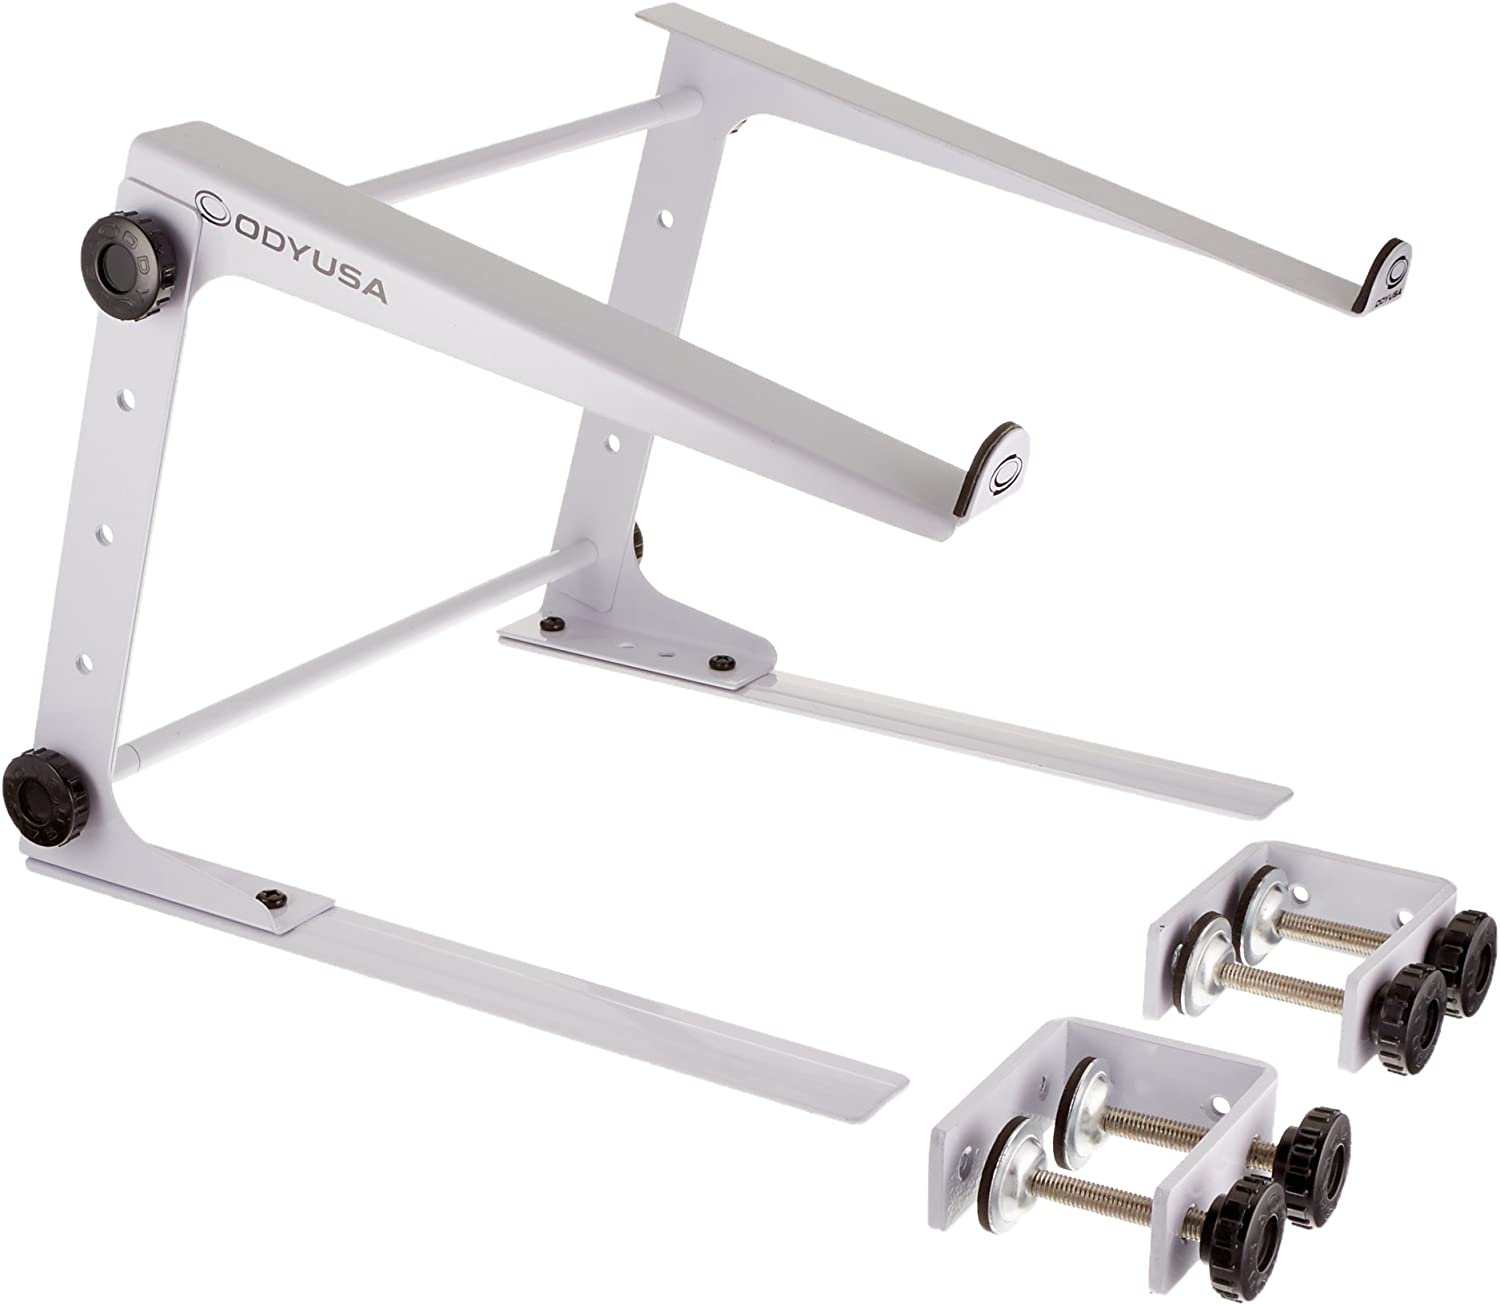 Odysset L Stand WhiteDJ Laptop Stand With Clamps